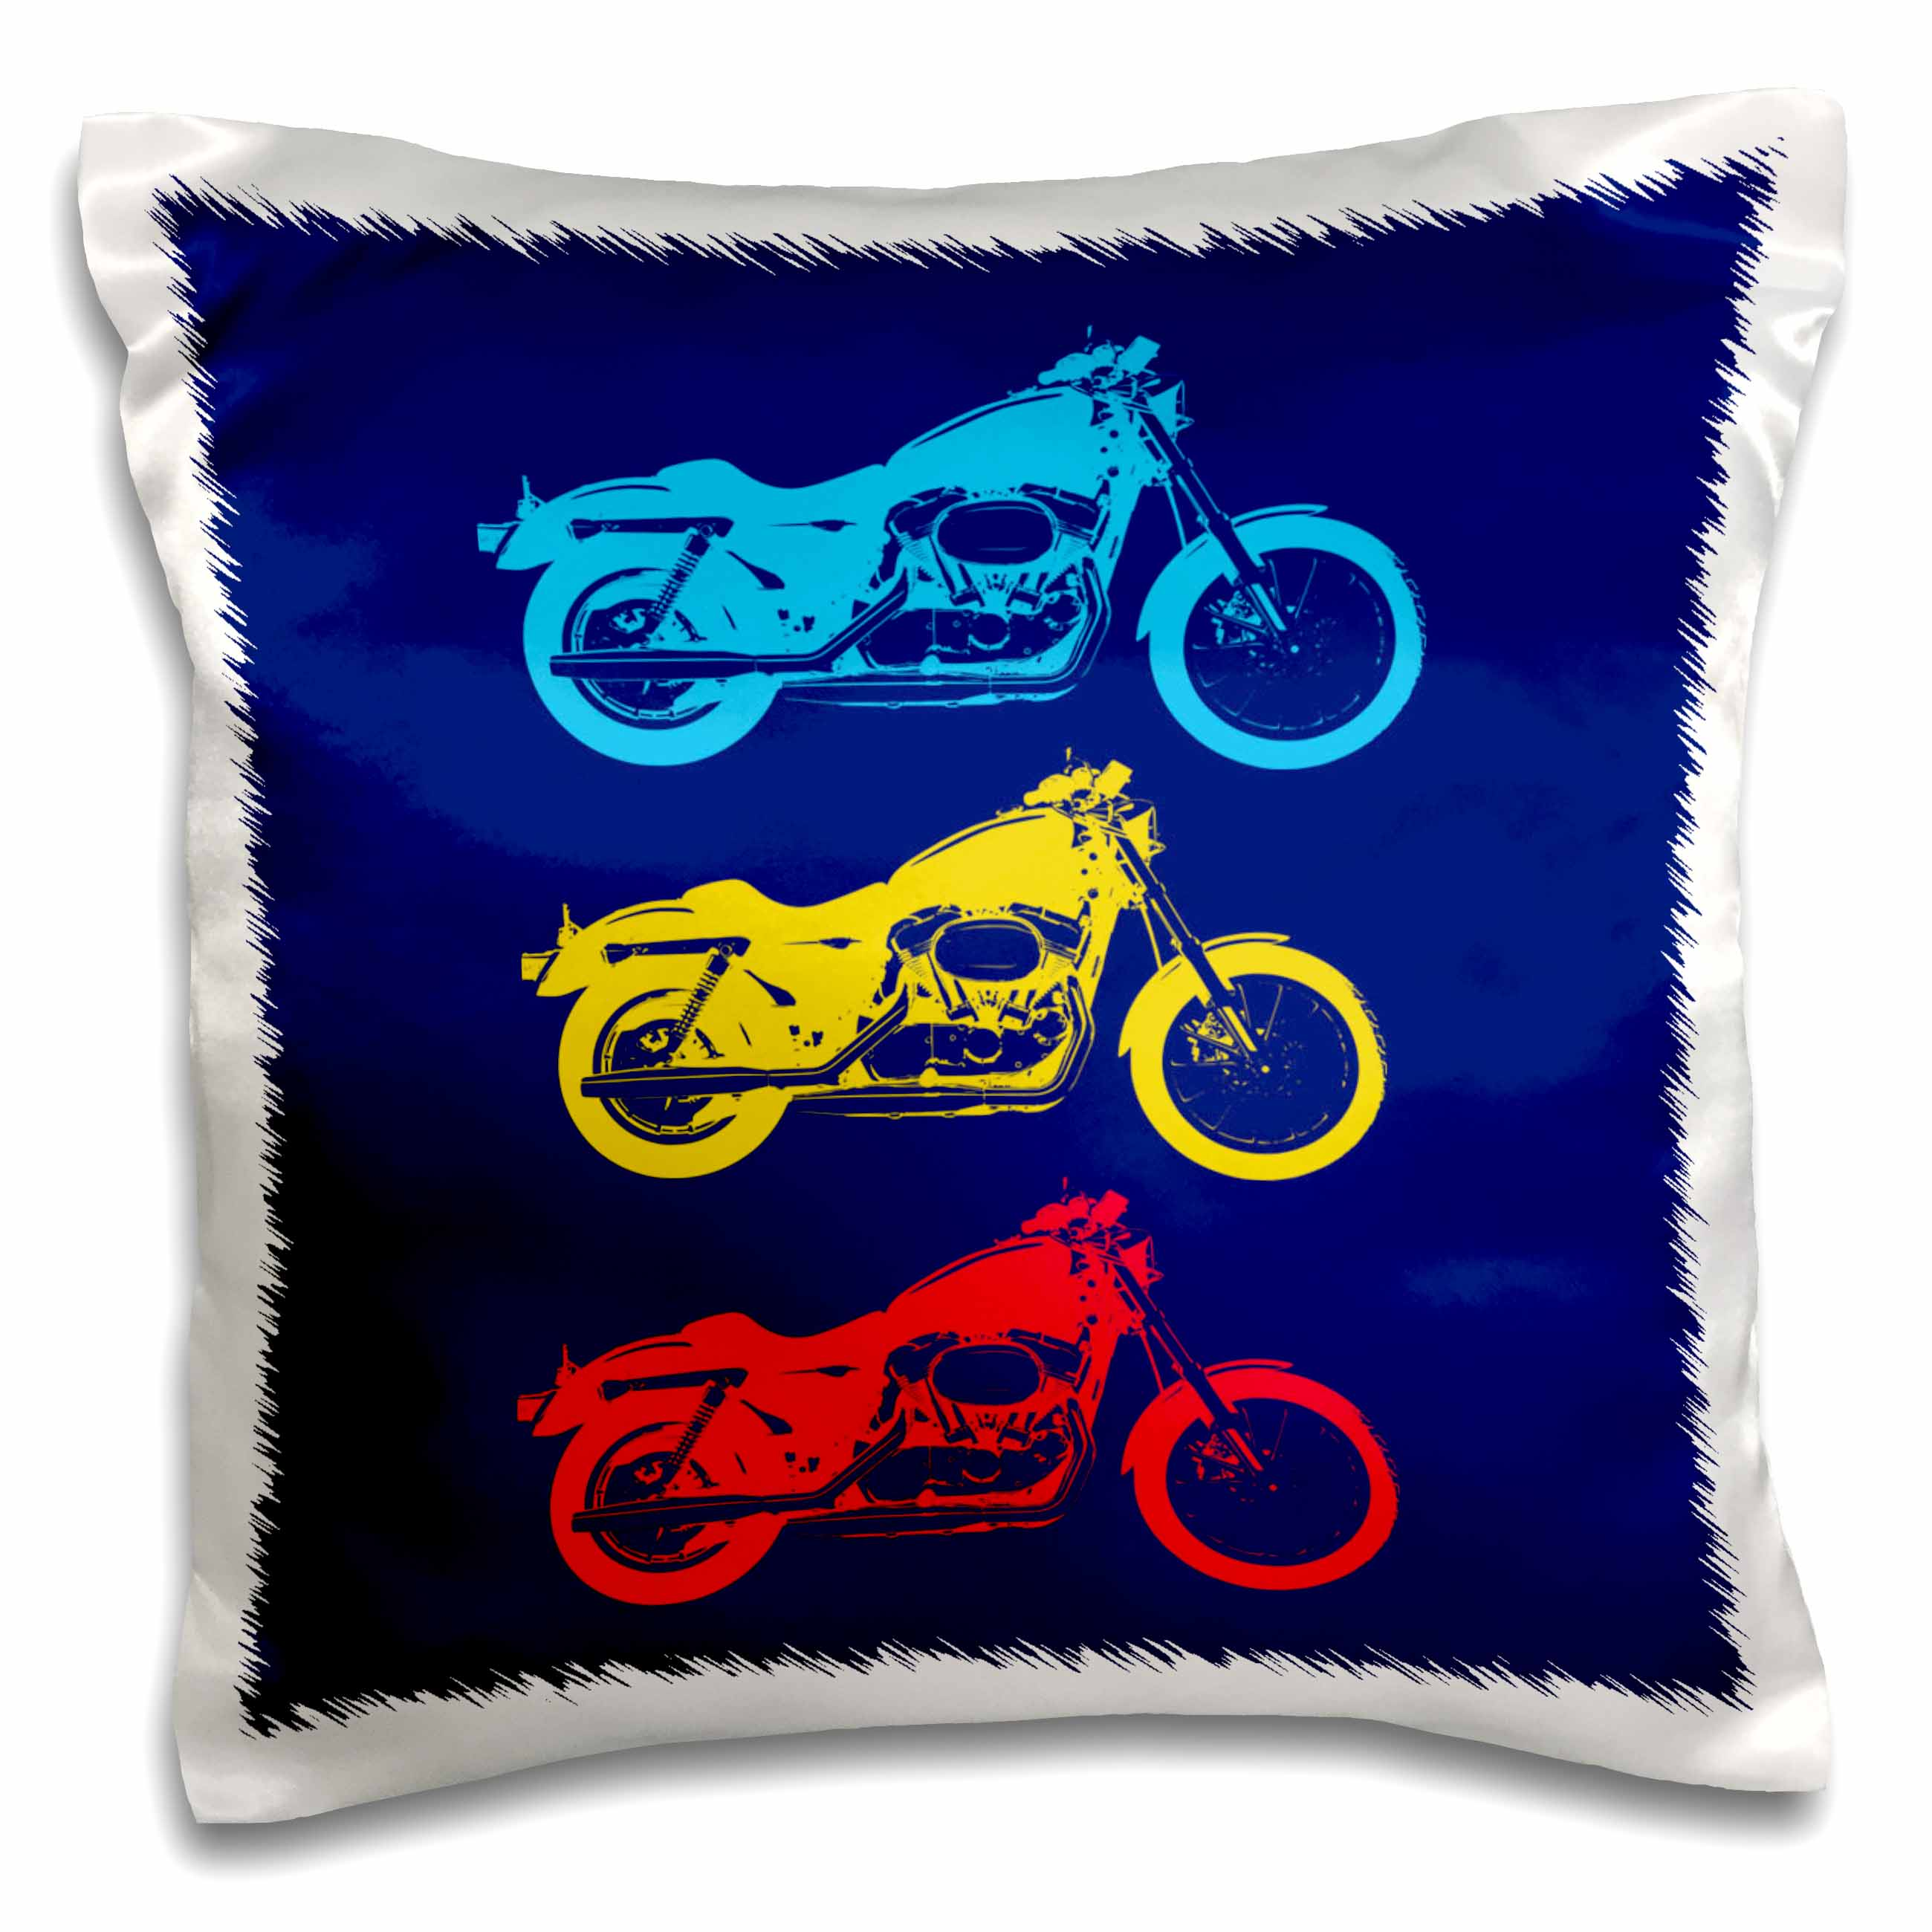 3dRose Motorcycle. Blue, yellow and red. Decor. Navy, Pillow Case, 16 by 16-inch by 3dRose